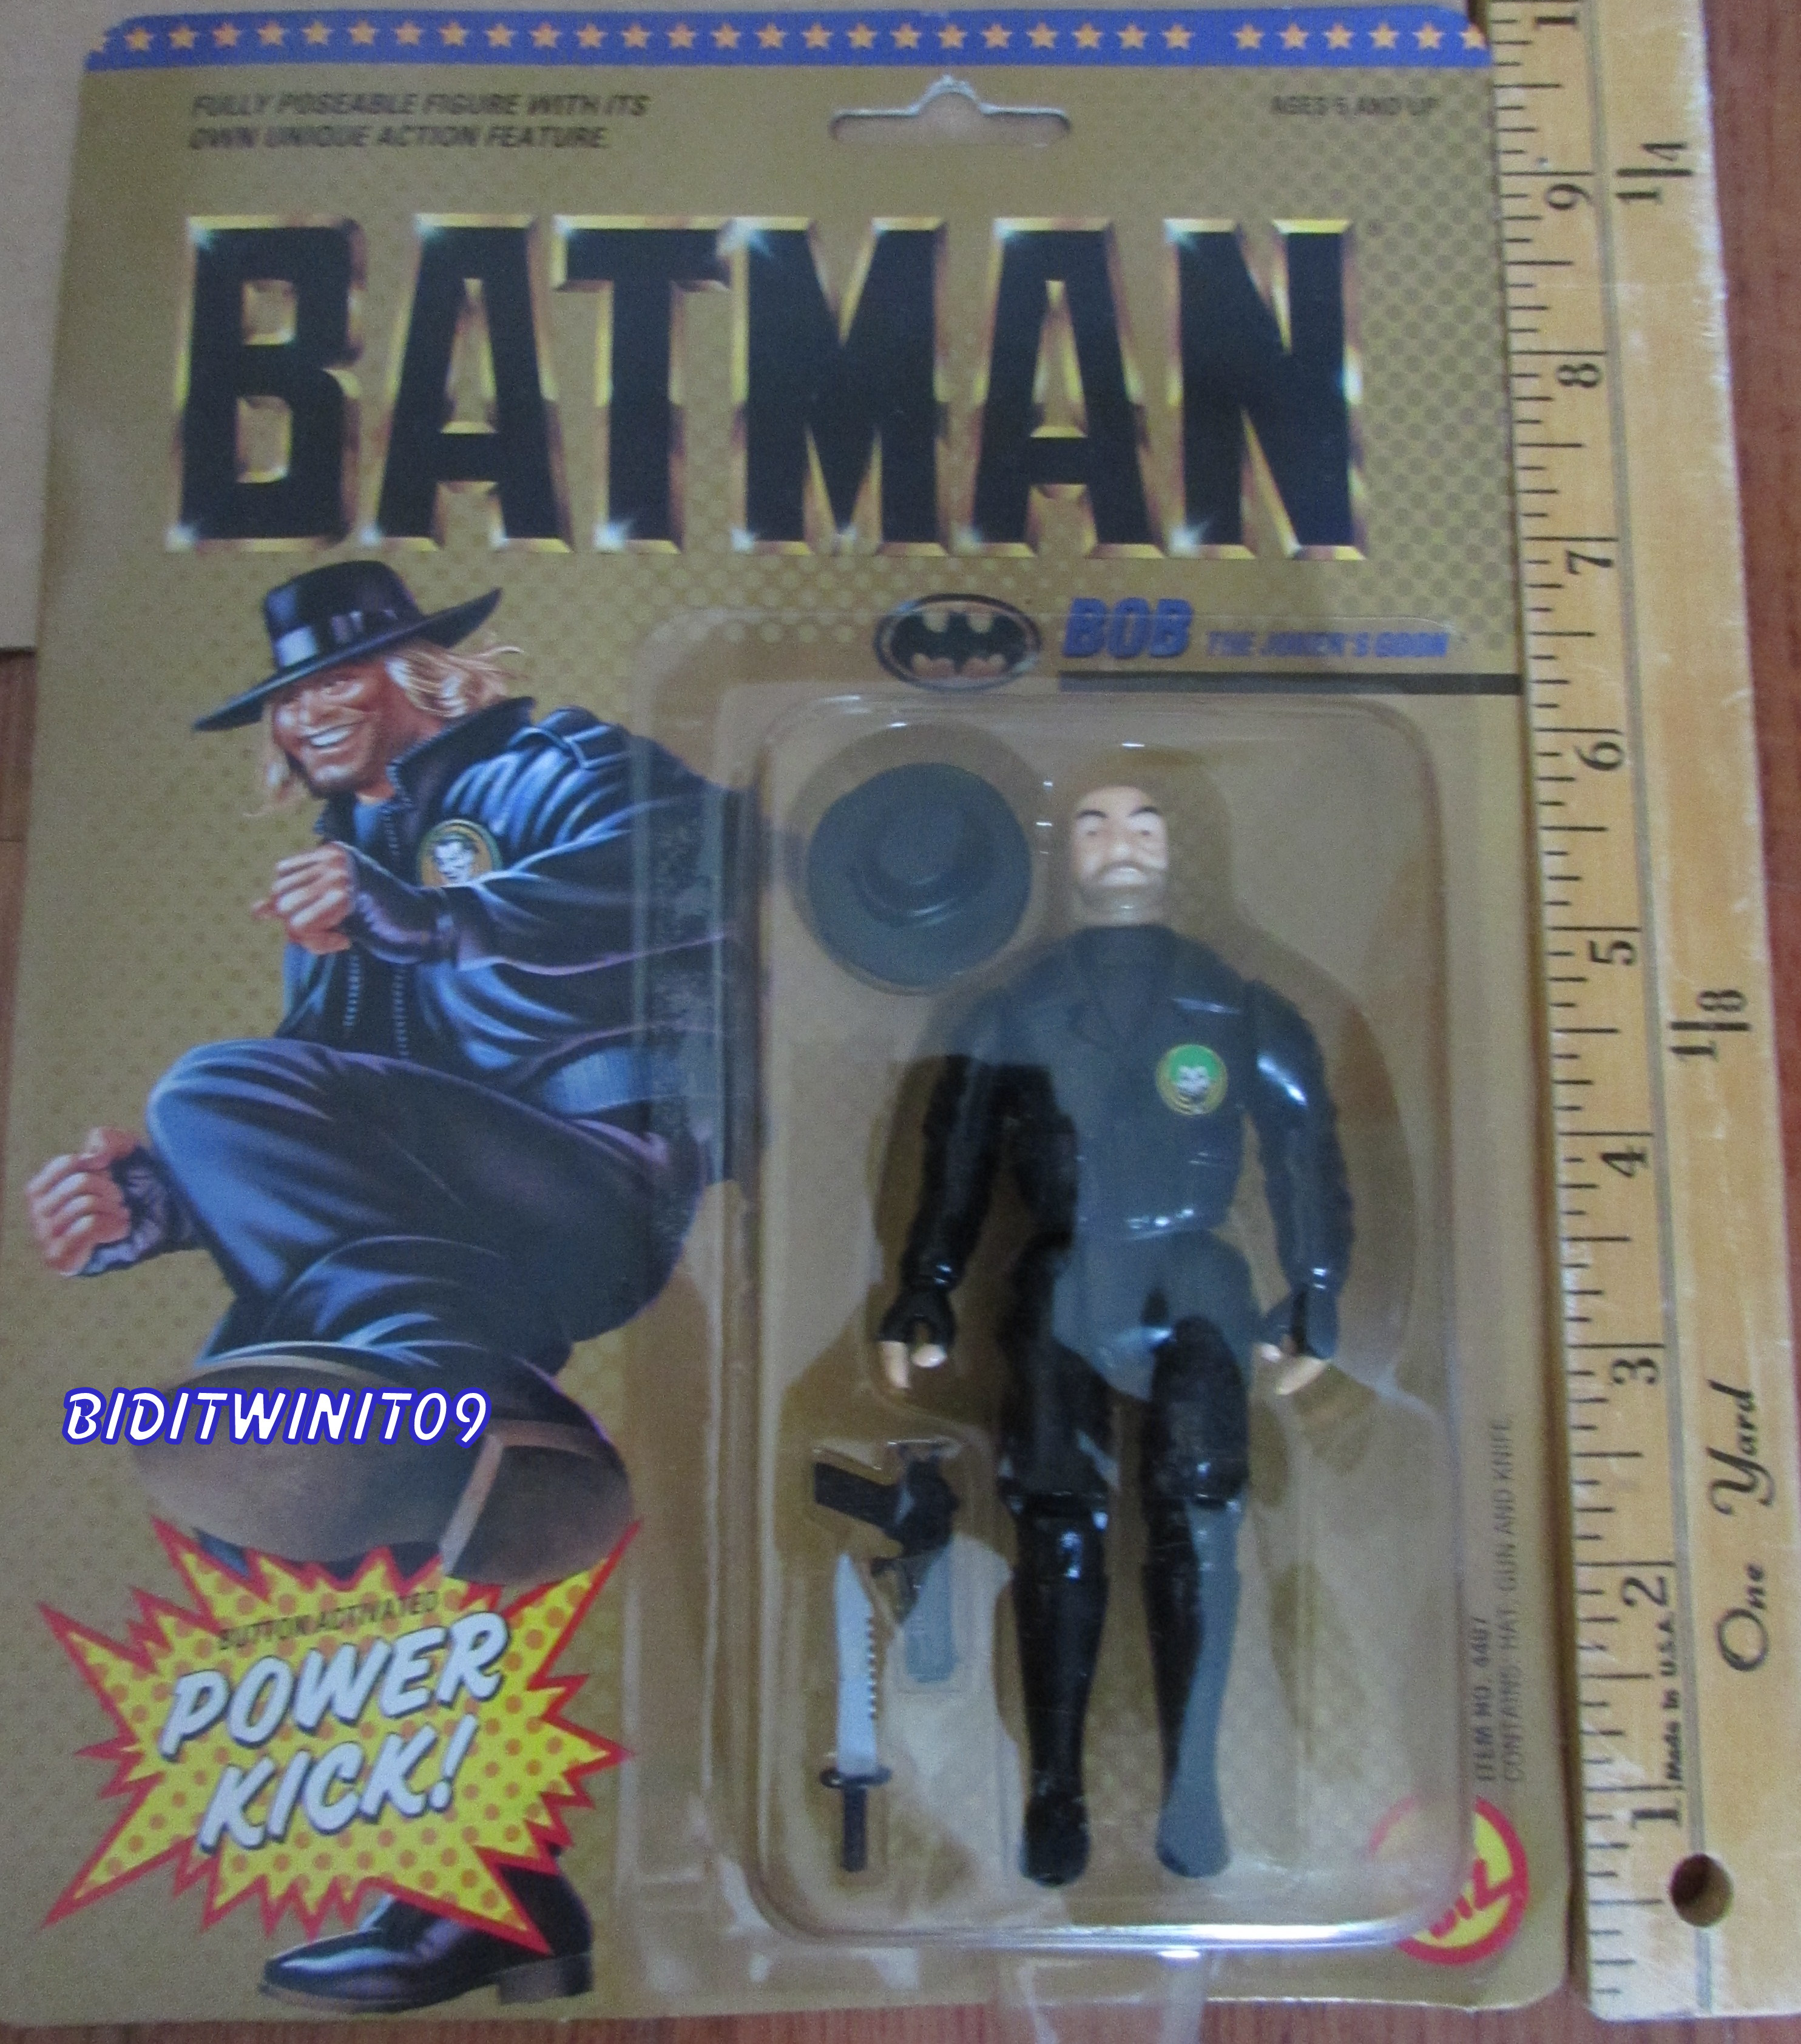 1989 TOYBIZ BATMAN SERIES BOB THE JOCKER'S GOON FIGURE WITH POWER KICK E+